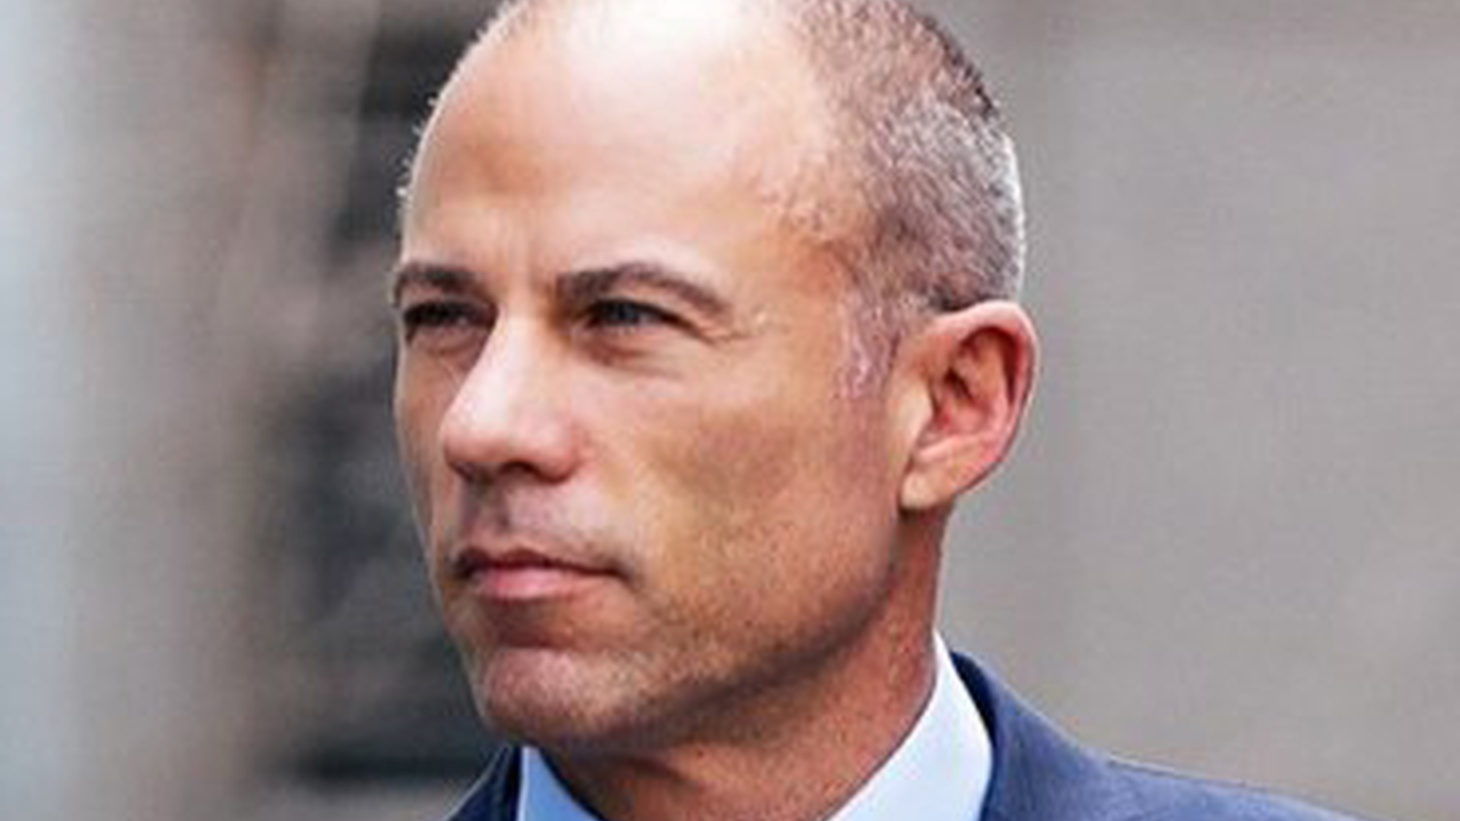 Ken White and Josh Barro dive right into the legal web that knits together Michael Avenatti, Stephanie Clifford, Michael Cohen and Keith Davidson.